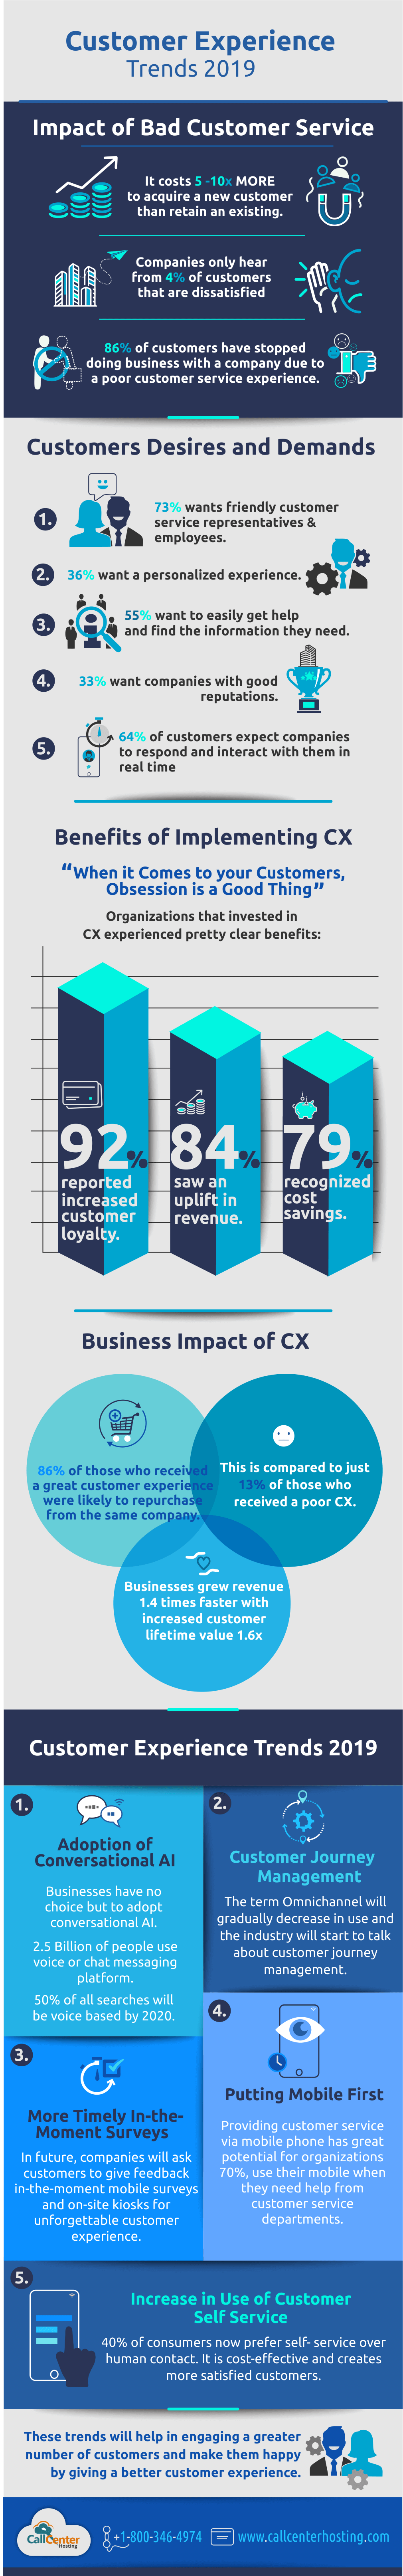 infographic-customer-experience-trends-2019